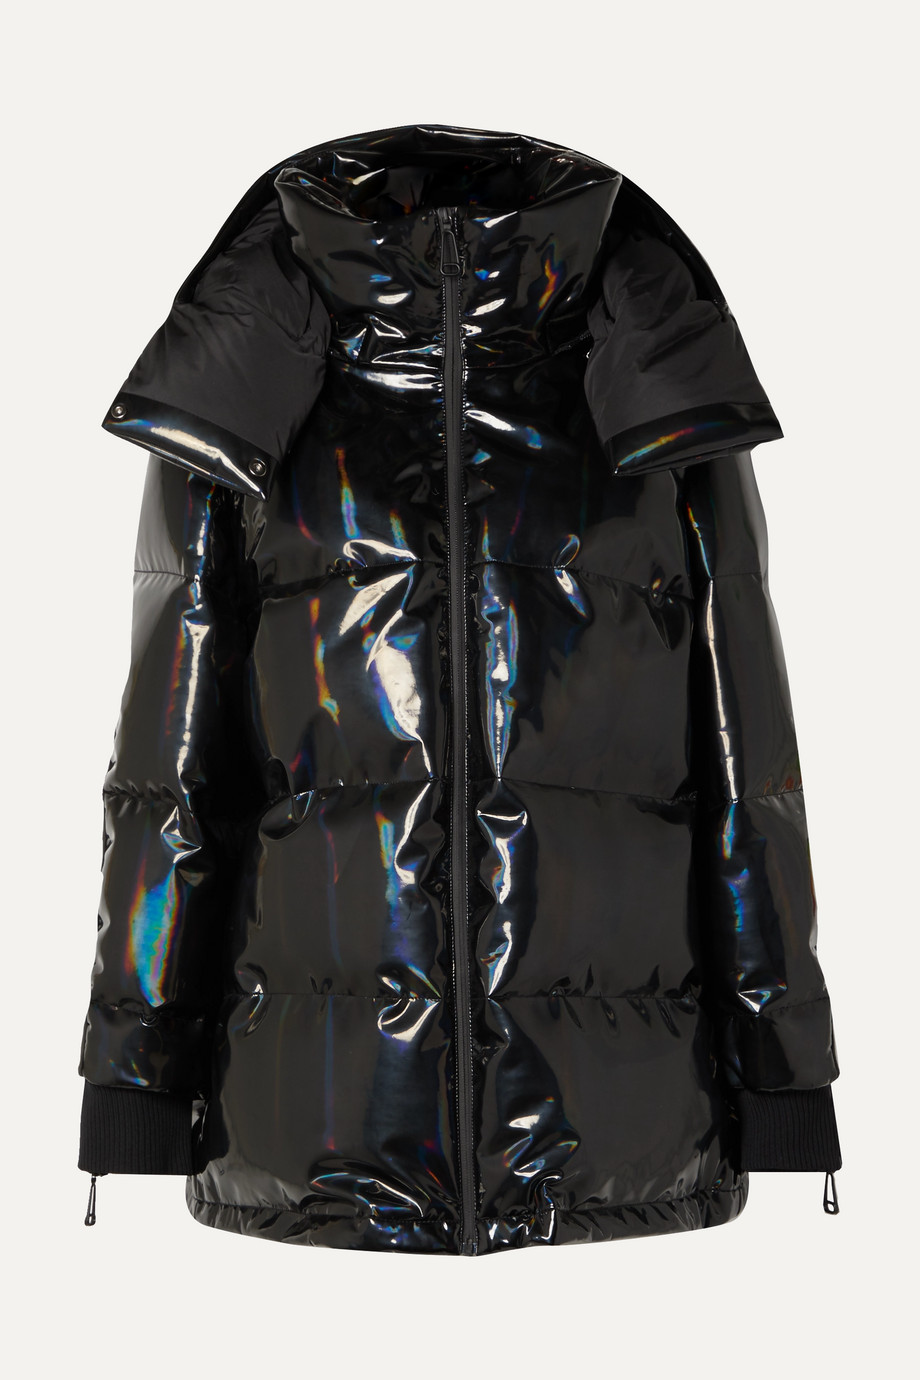 Fendi Hooded appliquéd quilted holographic down ski jacket